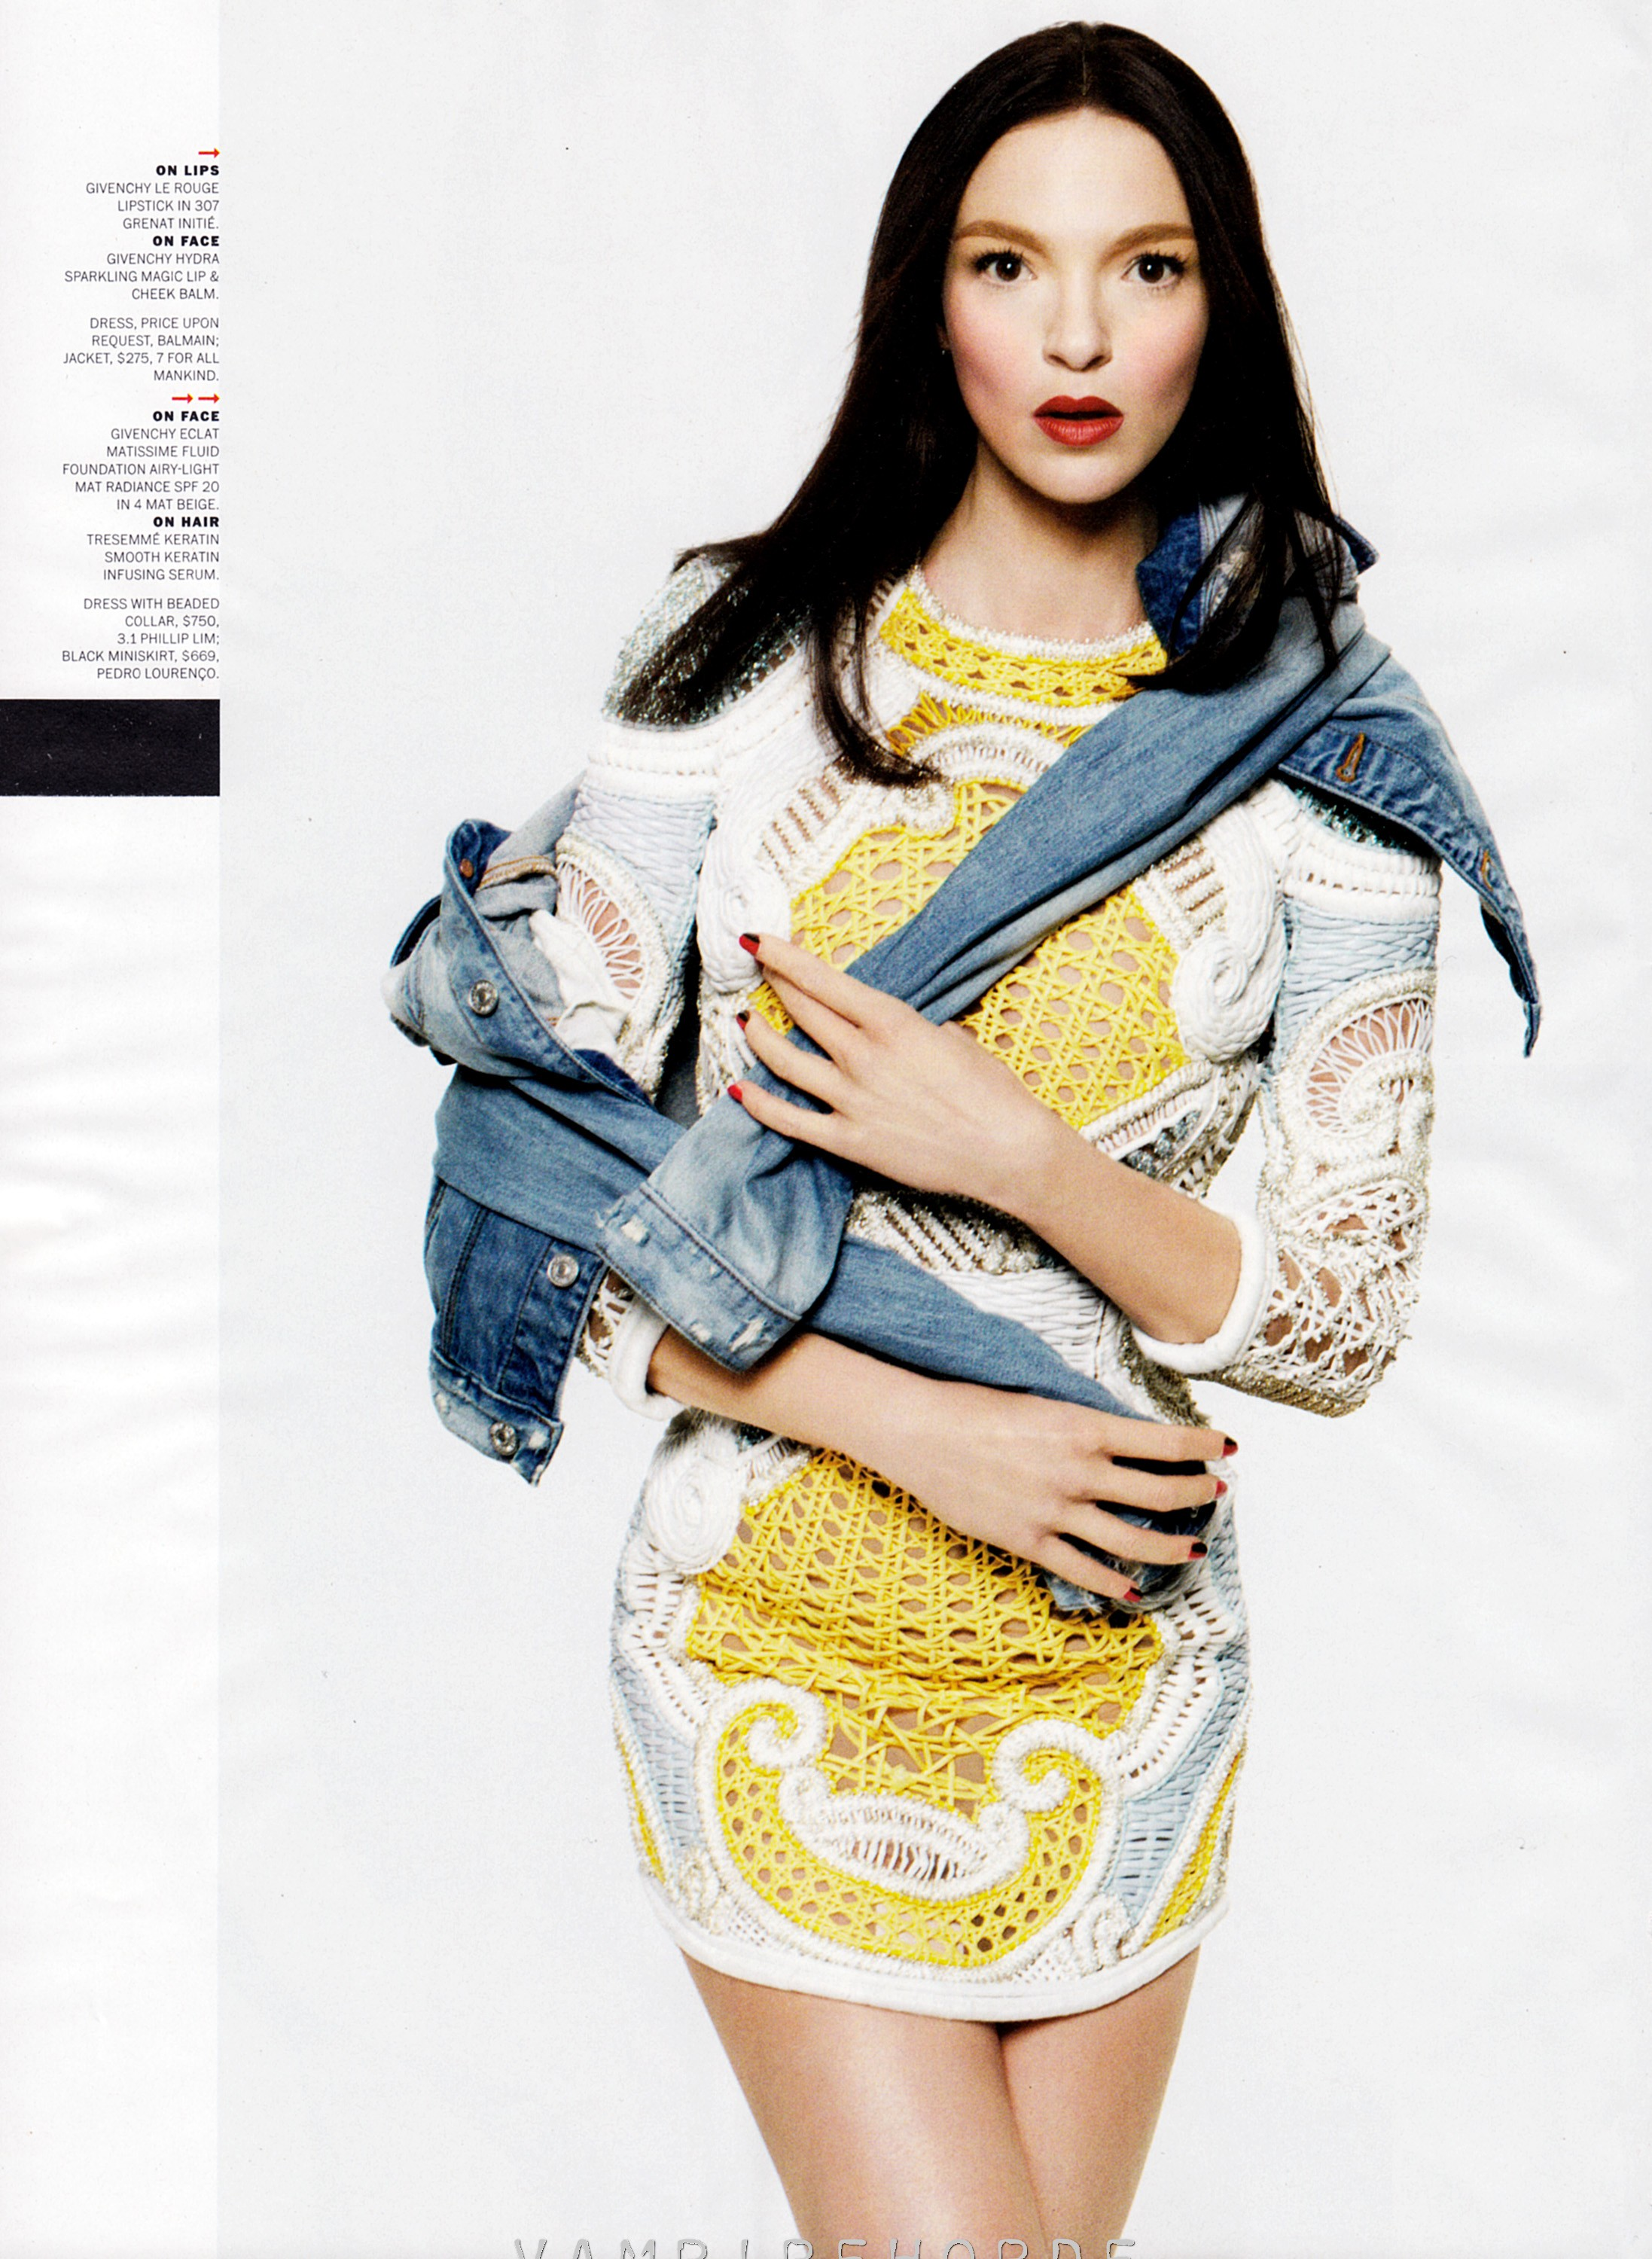 fashion_scans_remastered-maria_carla_boscono-maire_claire_usa-april_2013-scanned_by_vampirehorde-hq-4